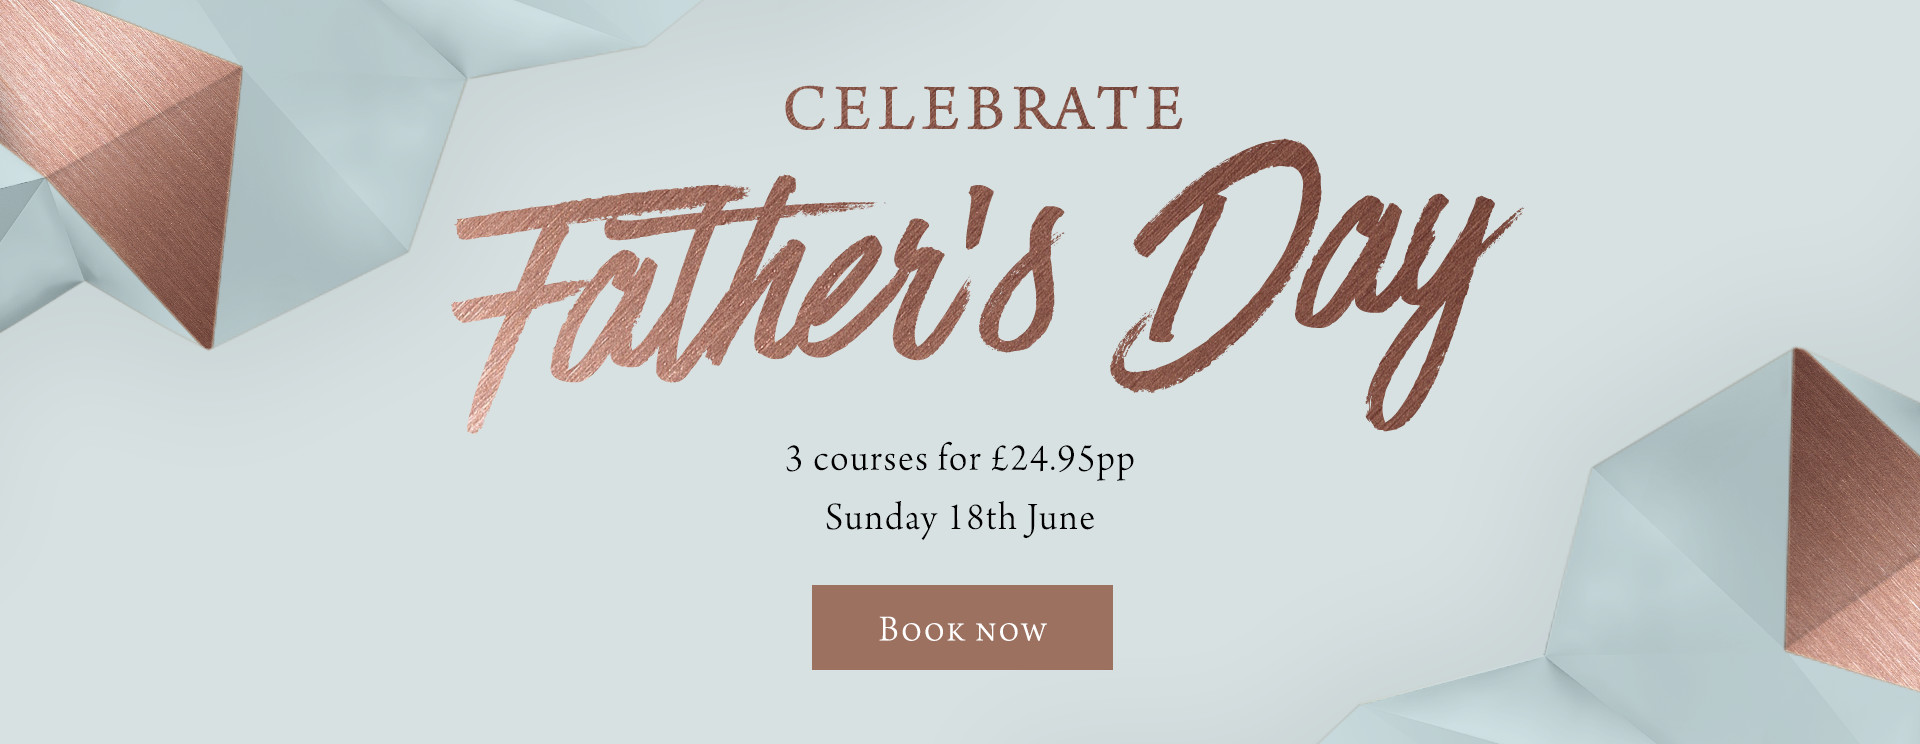 Father's Day at The Wicked Lady - Book now